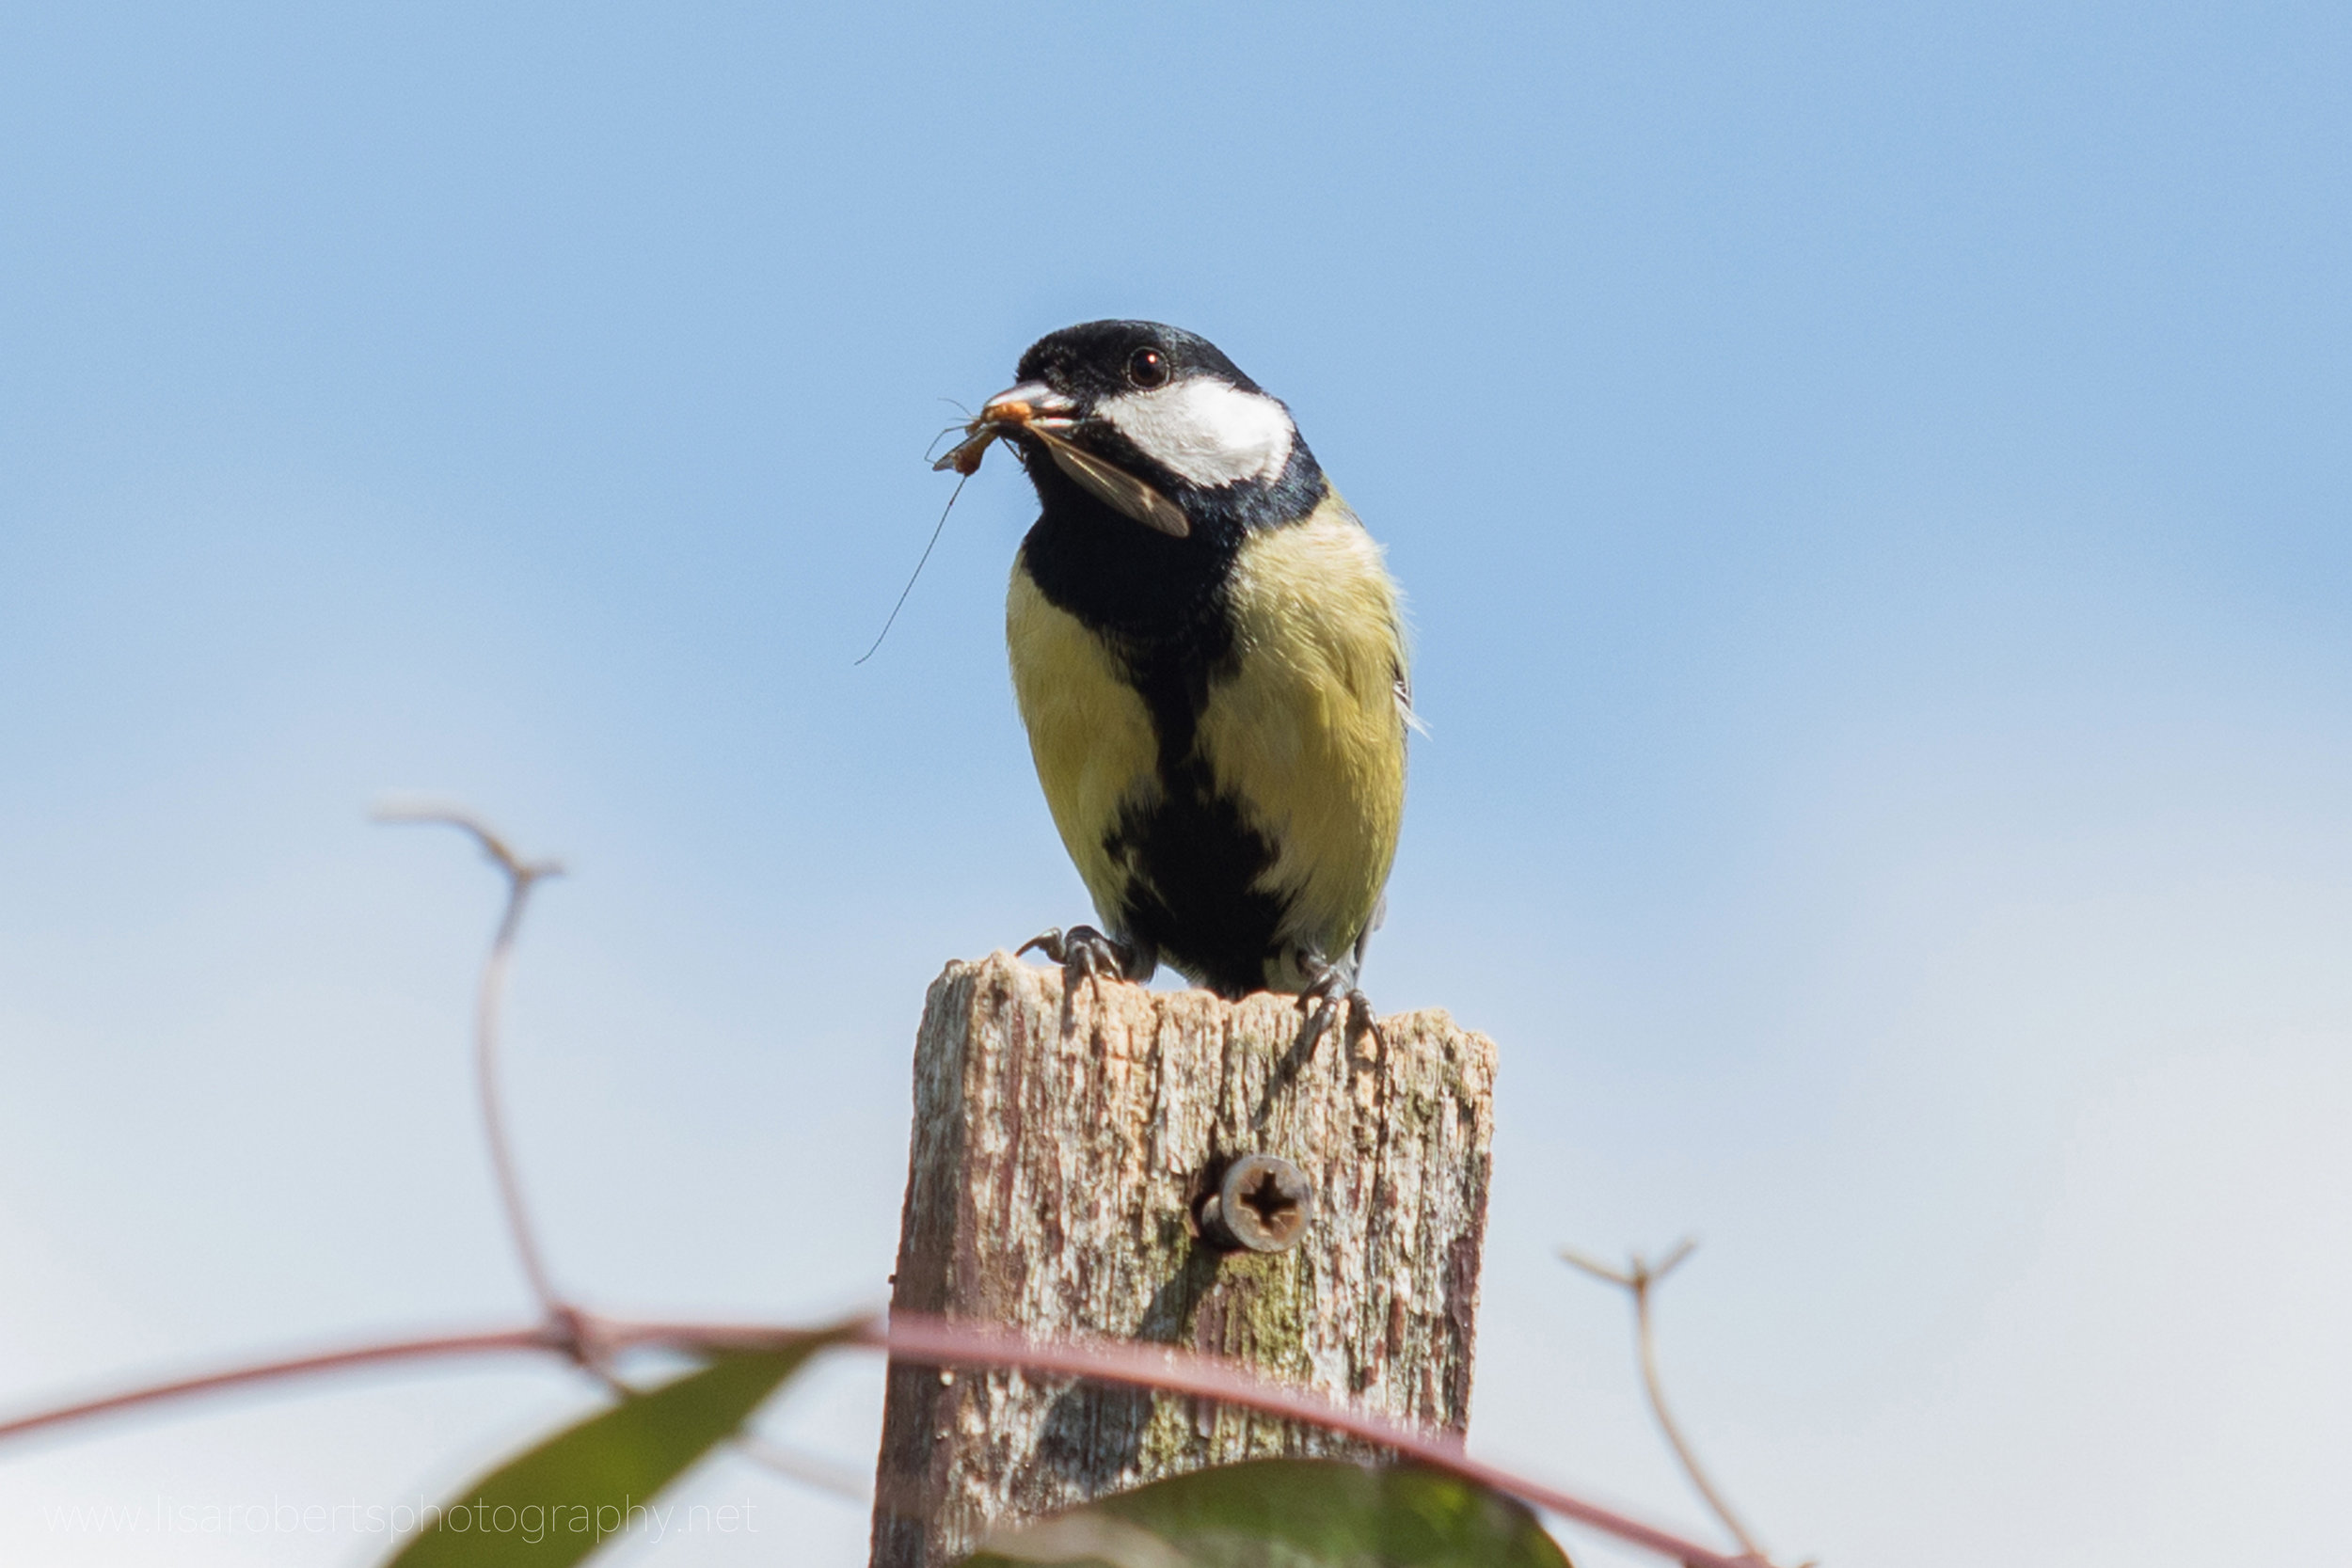 Male Great tit with Crane Fly